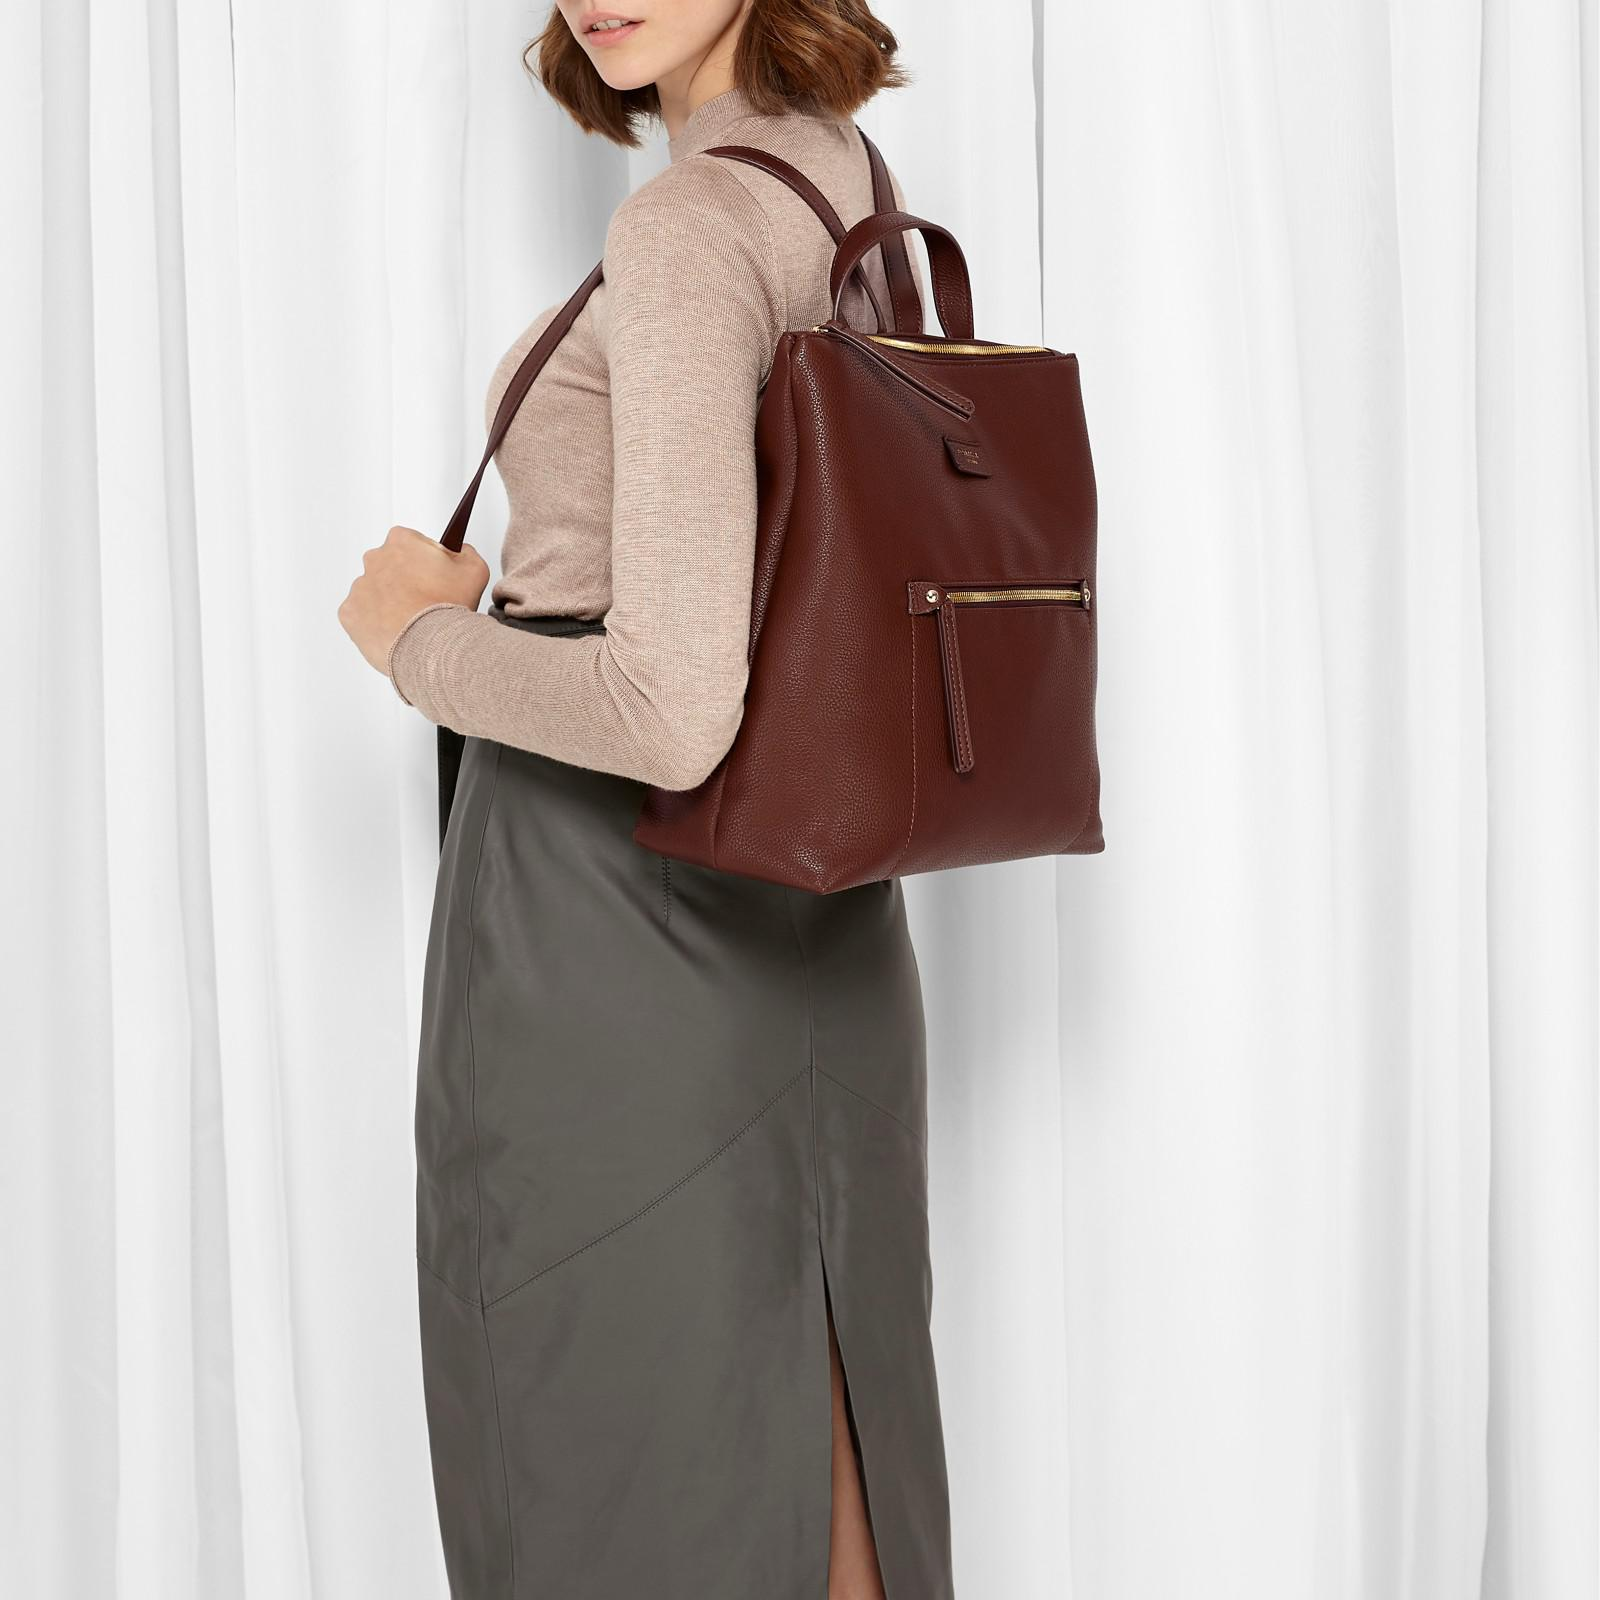 Fiorelli Lexi Backpack in Brown - Lyst